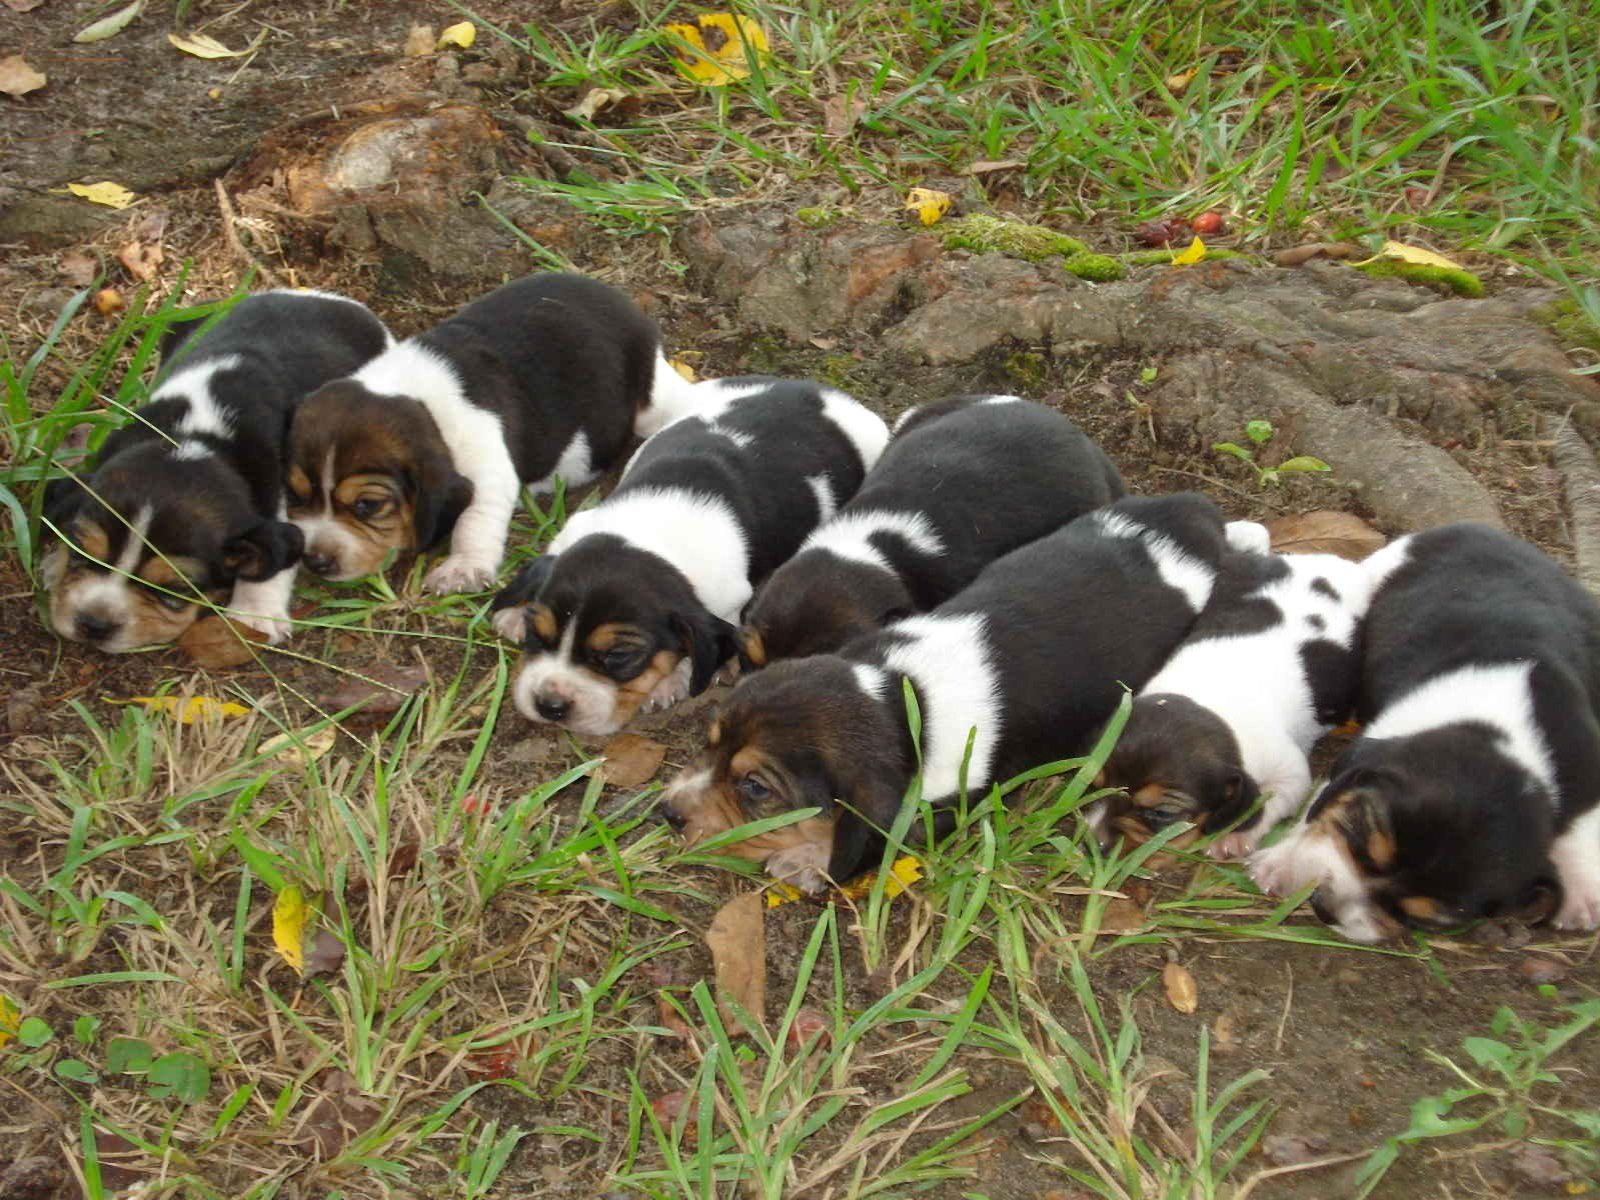 click to free download the wallpaper--Cute Animals Image, Beagle Puppies Unwilling to Open the Eyes, Sound Sleep Outdoor 1600X1200 free wallpaper download